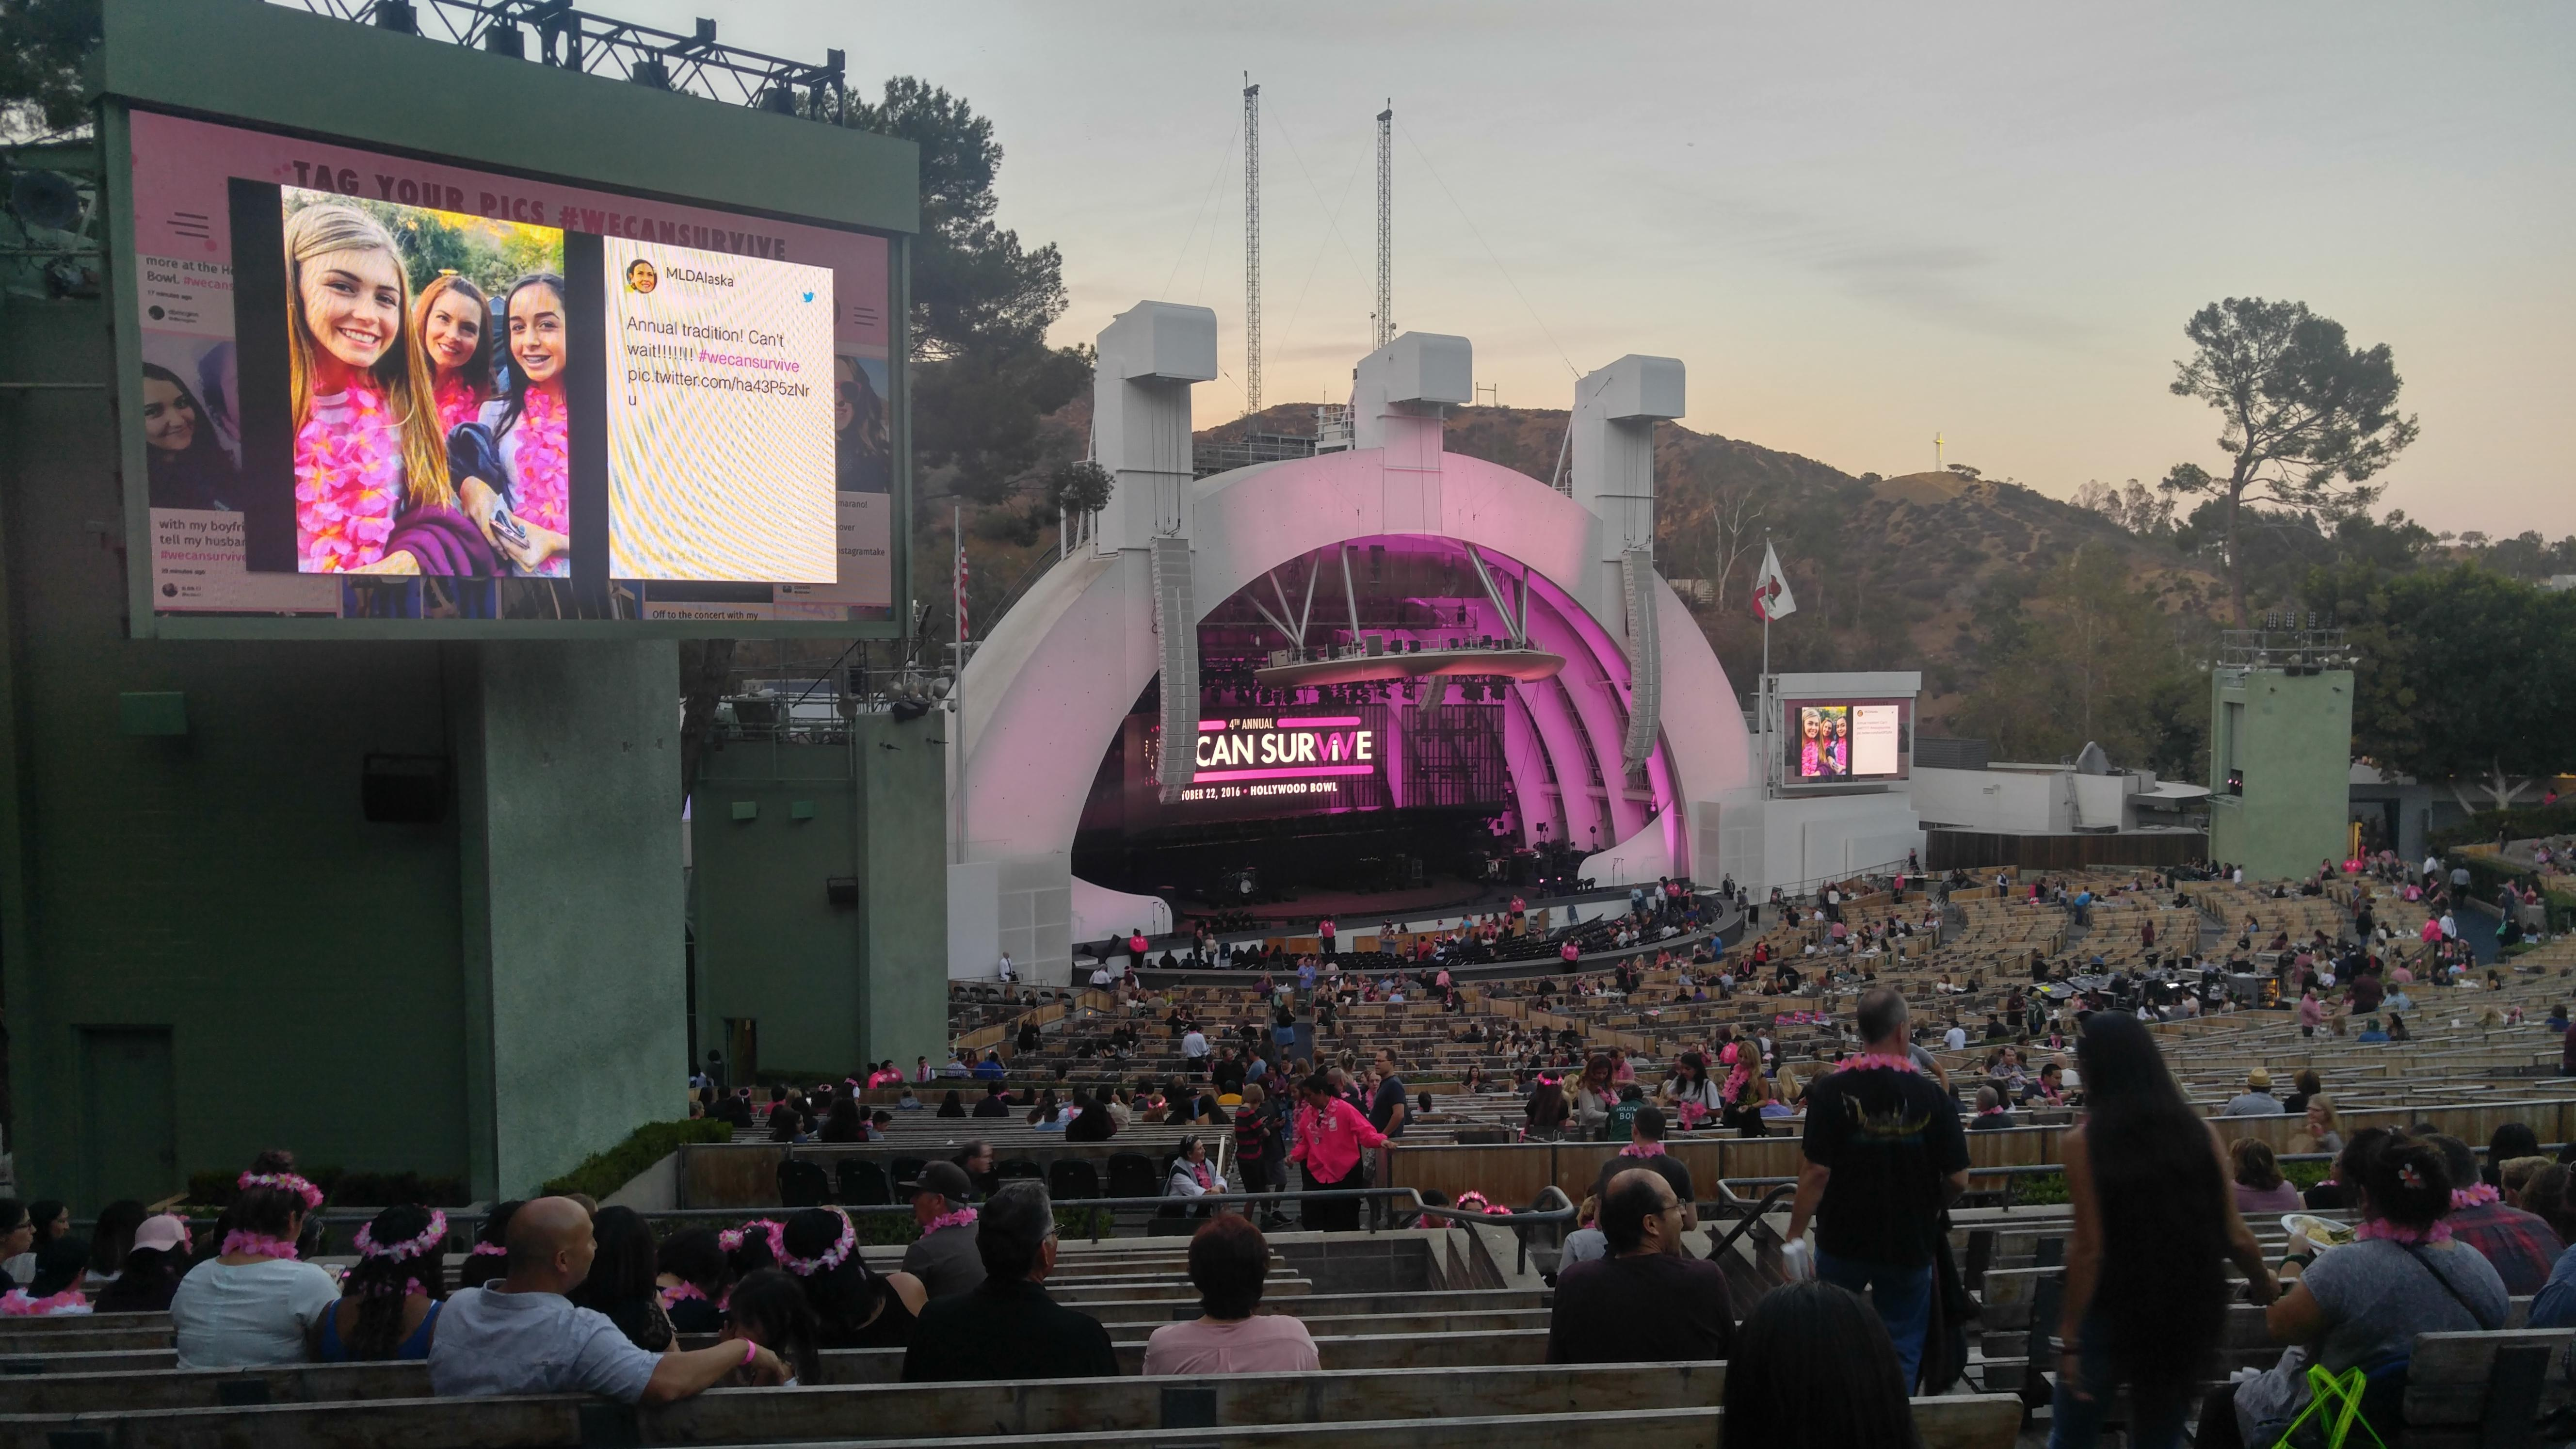 Hollywood Bowl Section K3 Row 14 Seat 7